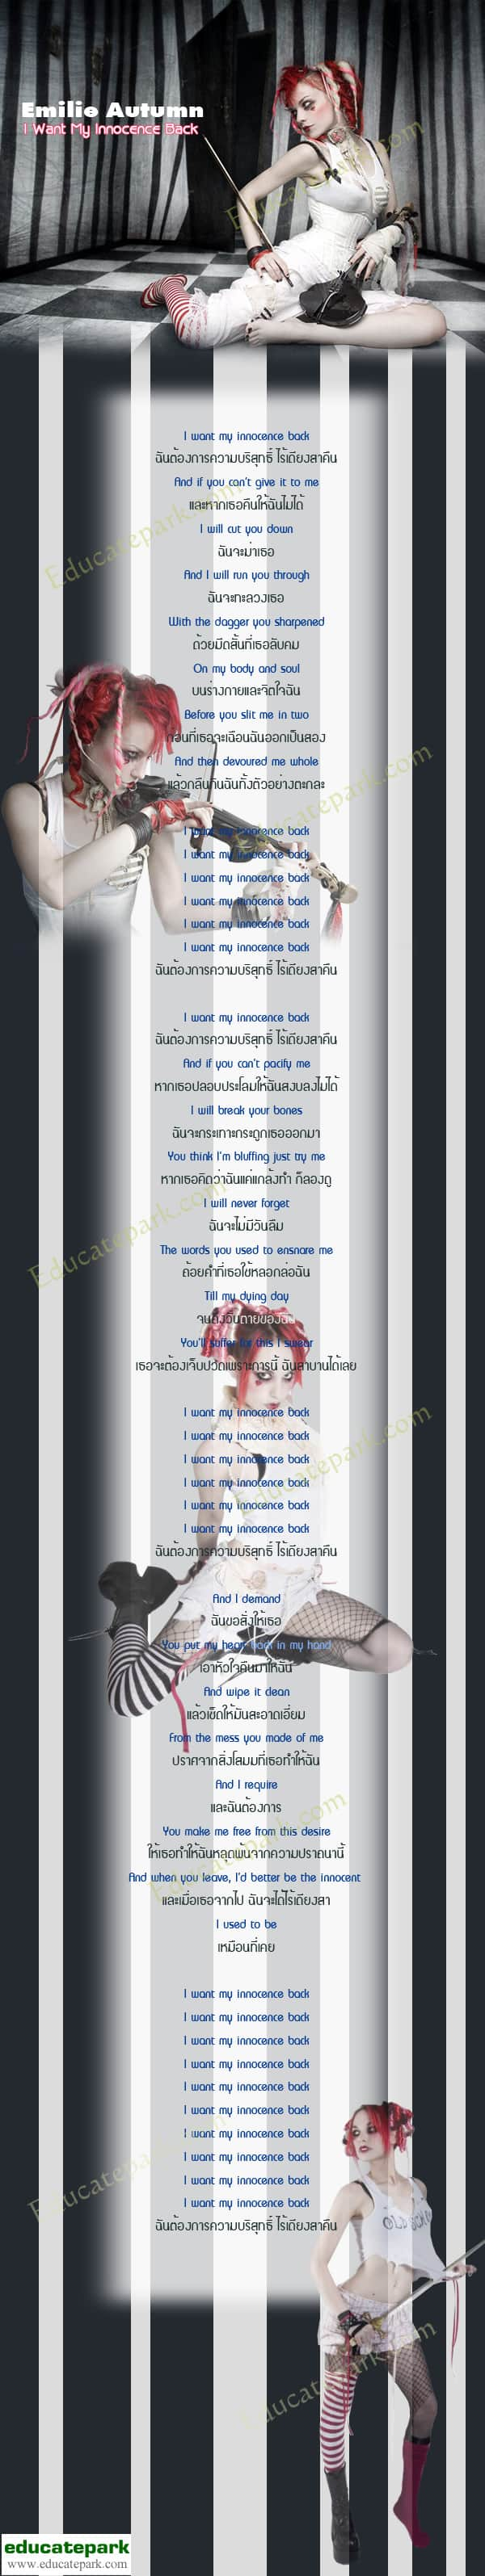 แปลเพลง I Want My Innocence Back - Emilie Autumn